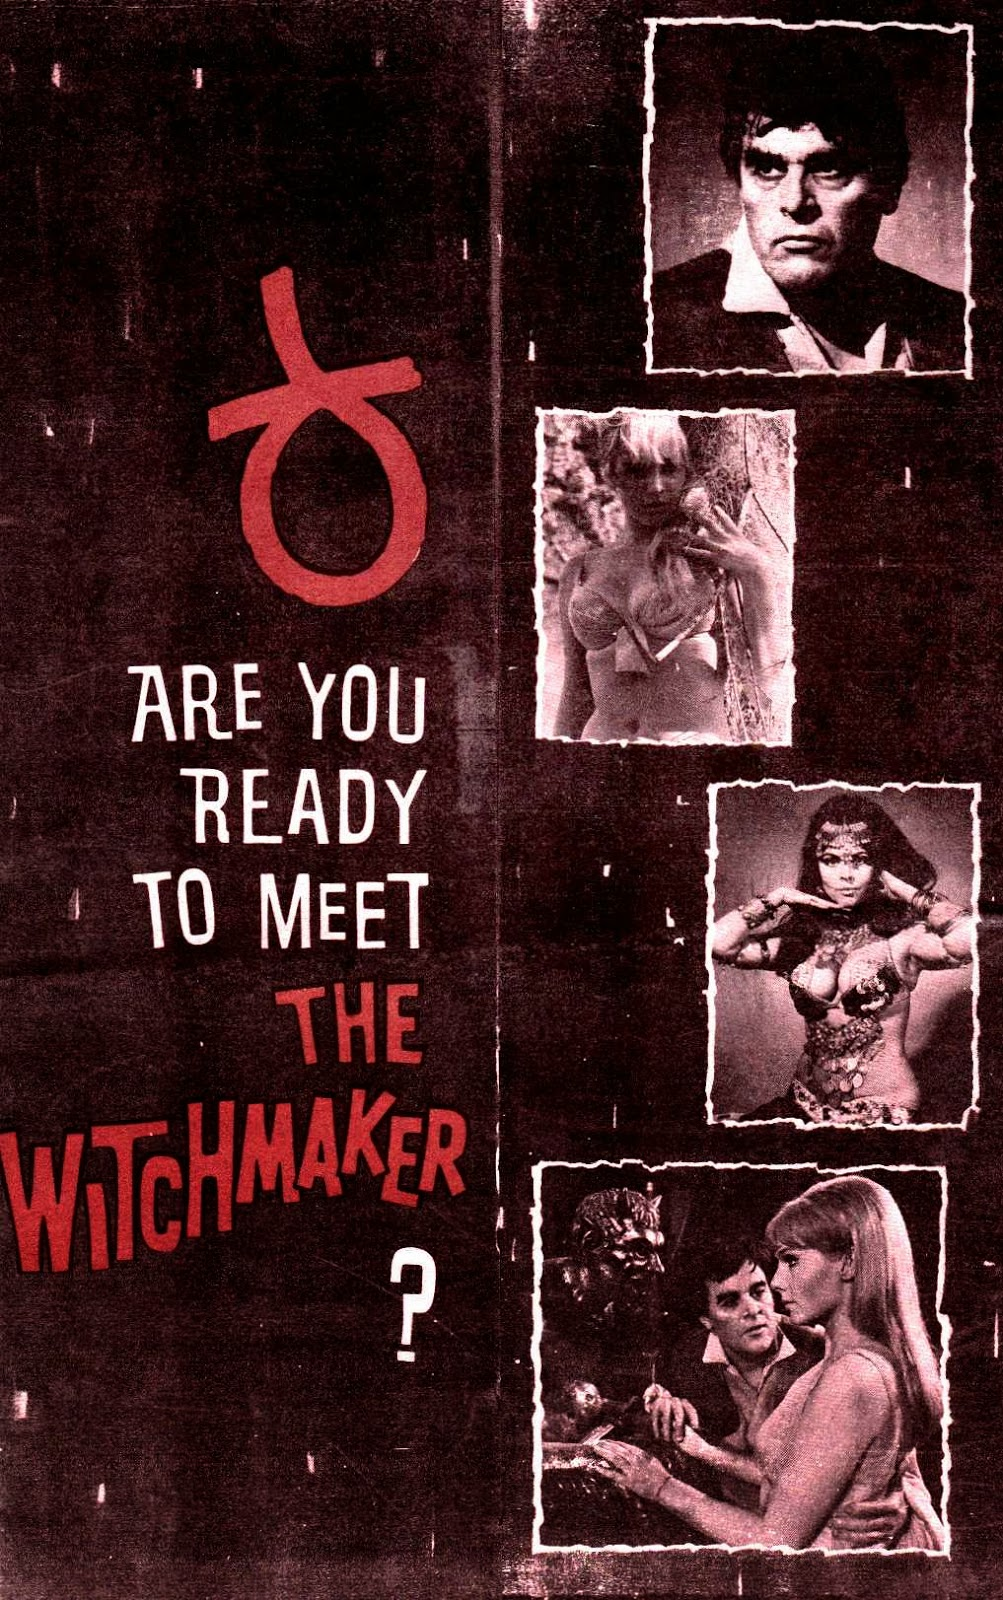 The Witchmaker 20kite44